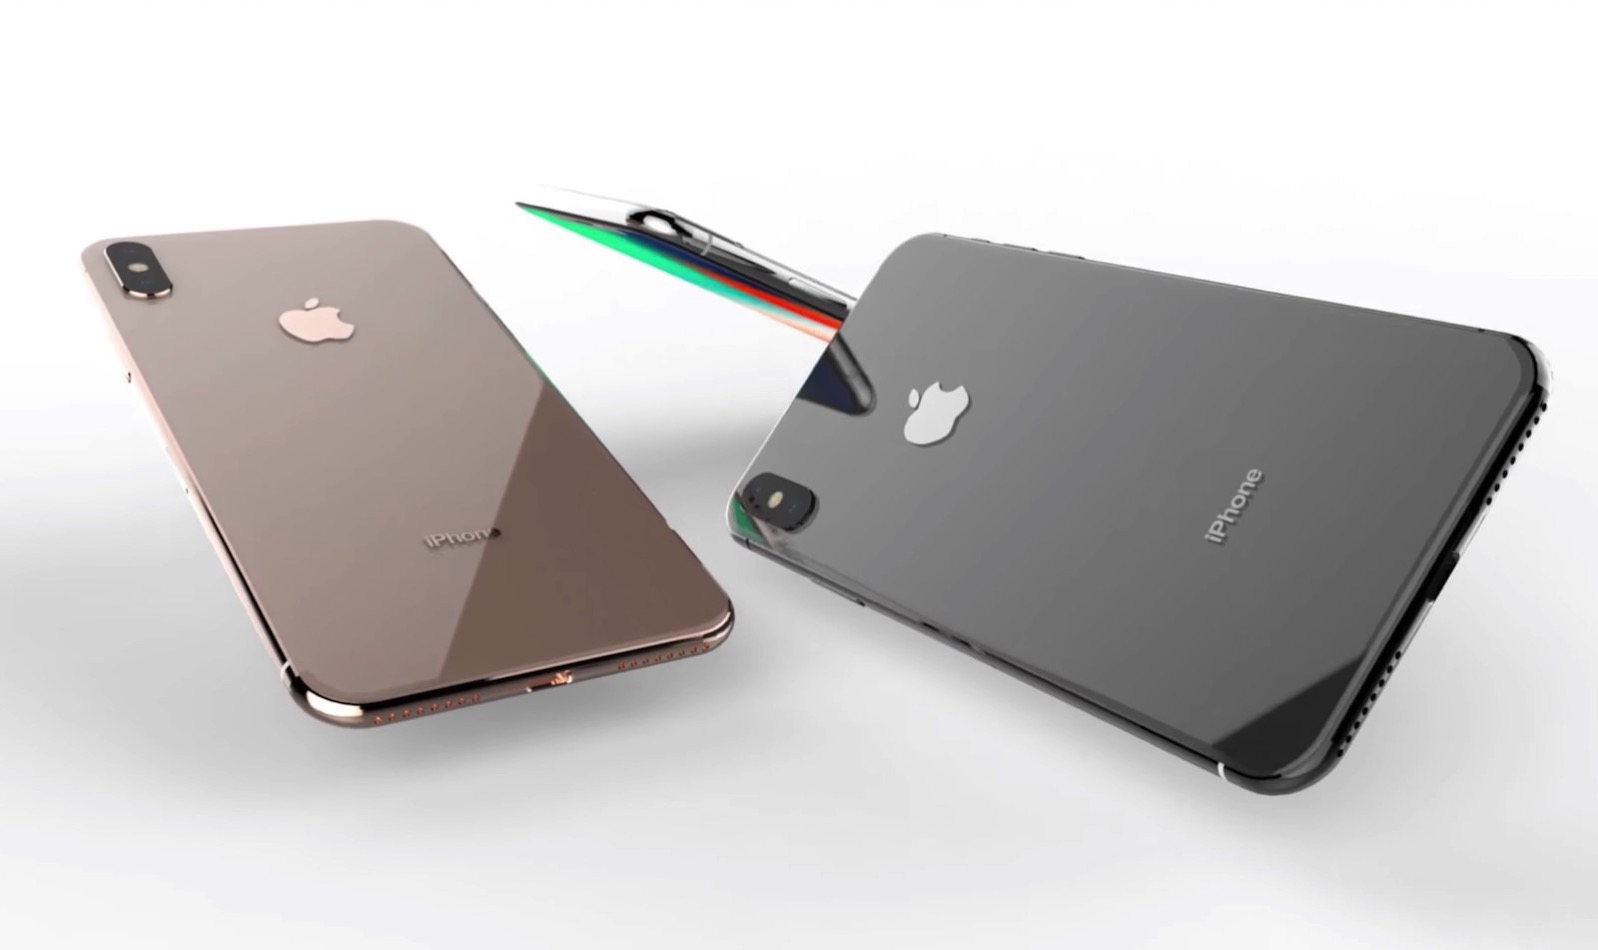 Iphonexplus concept image video